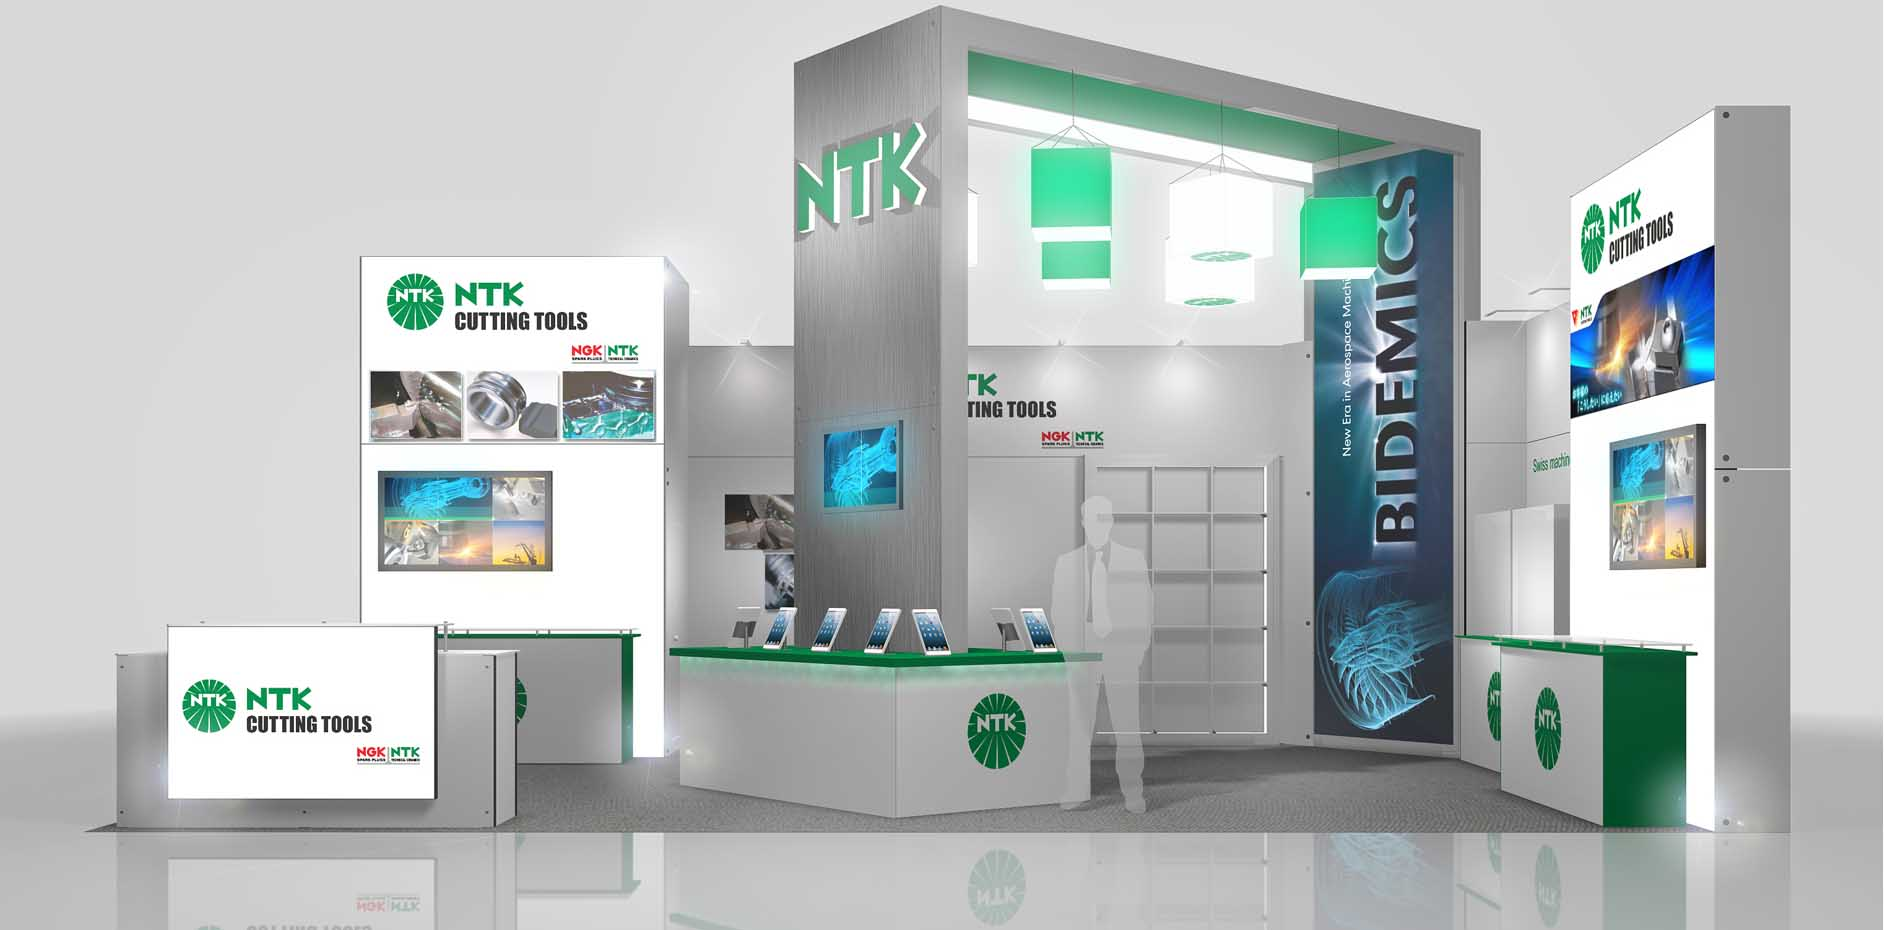 Expo Exhibition Stands Questions : Hire above sq meters exhibition stands by expo display